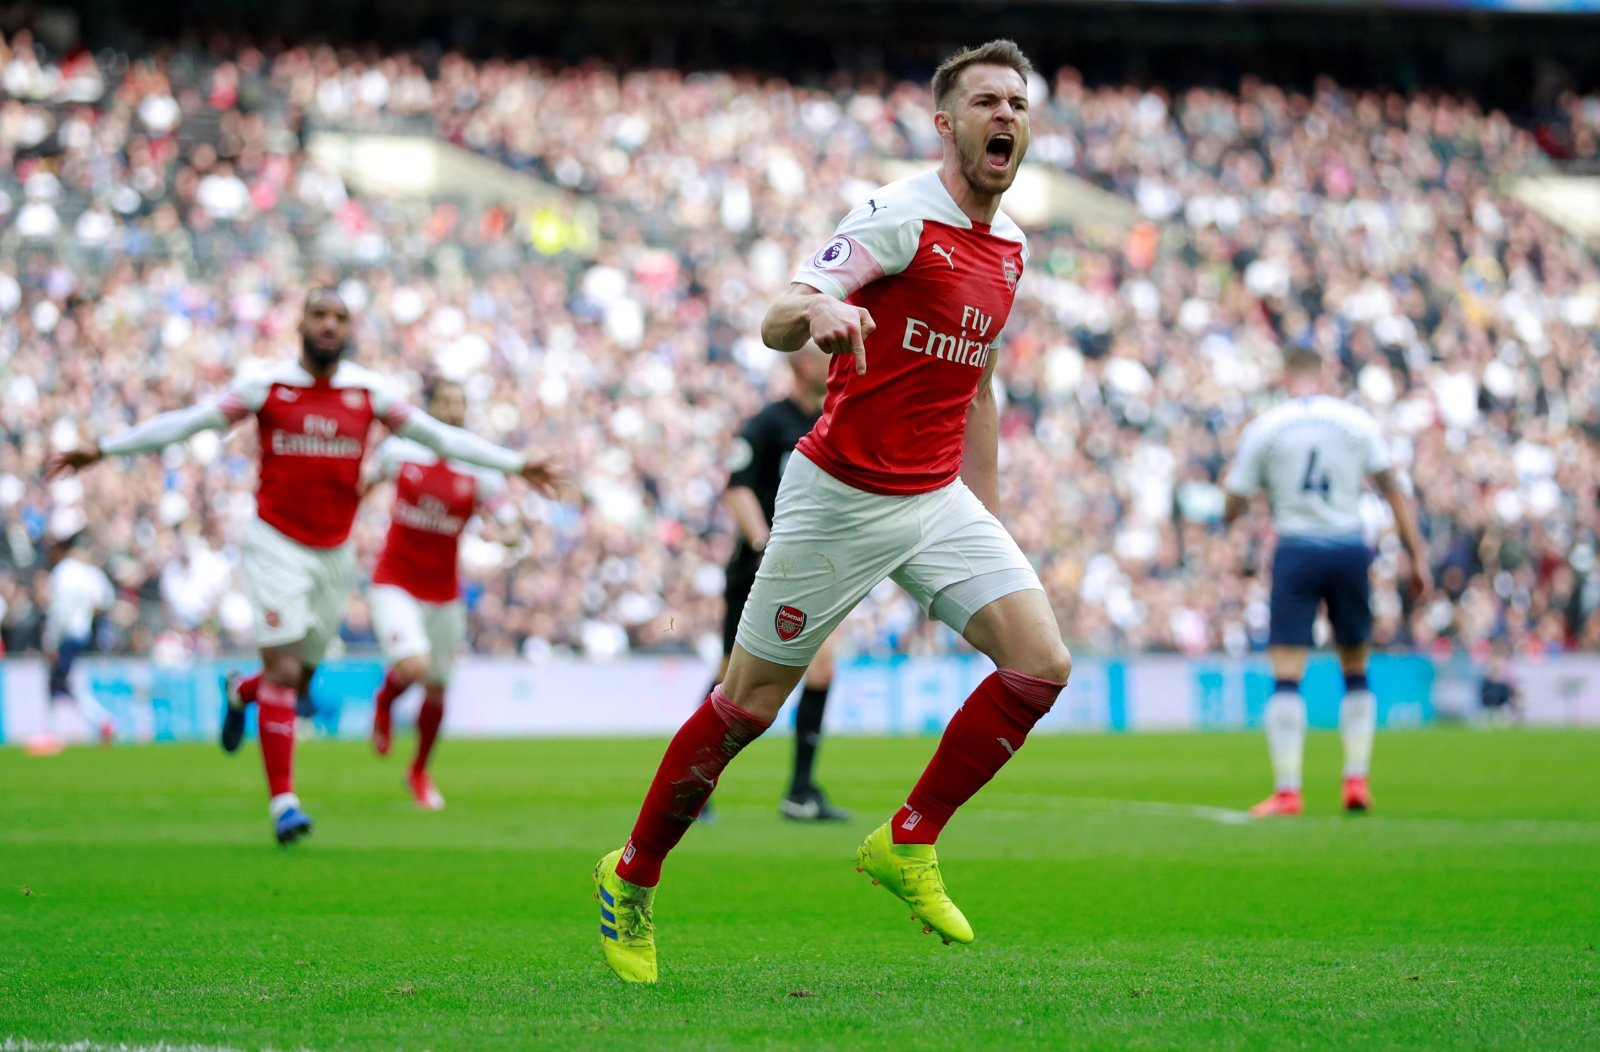 John Hartson: Aaron Ramsey's gone in there and showed great commitment